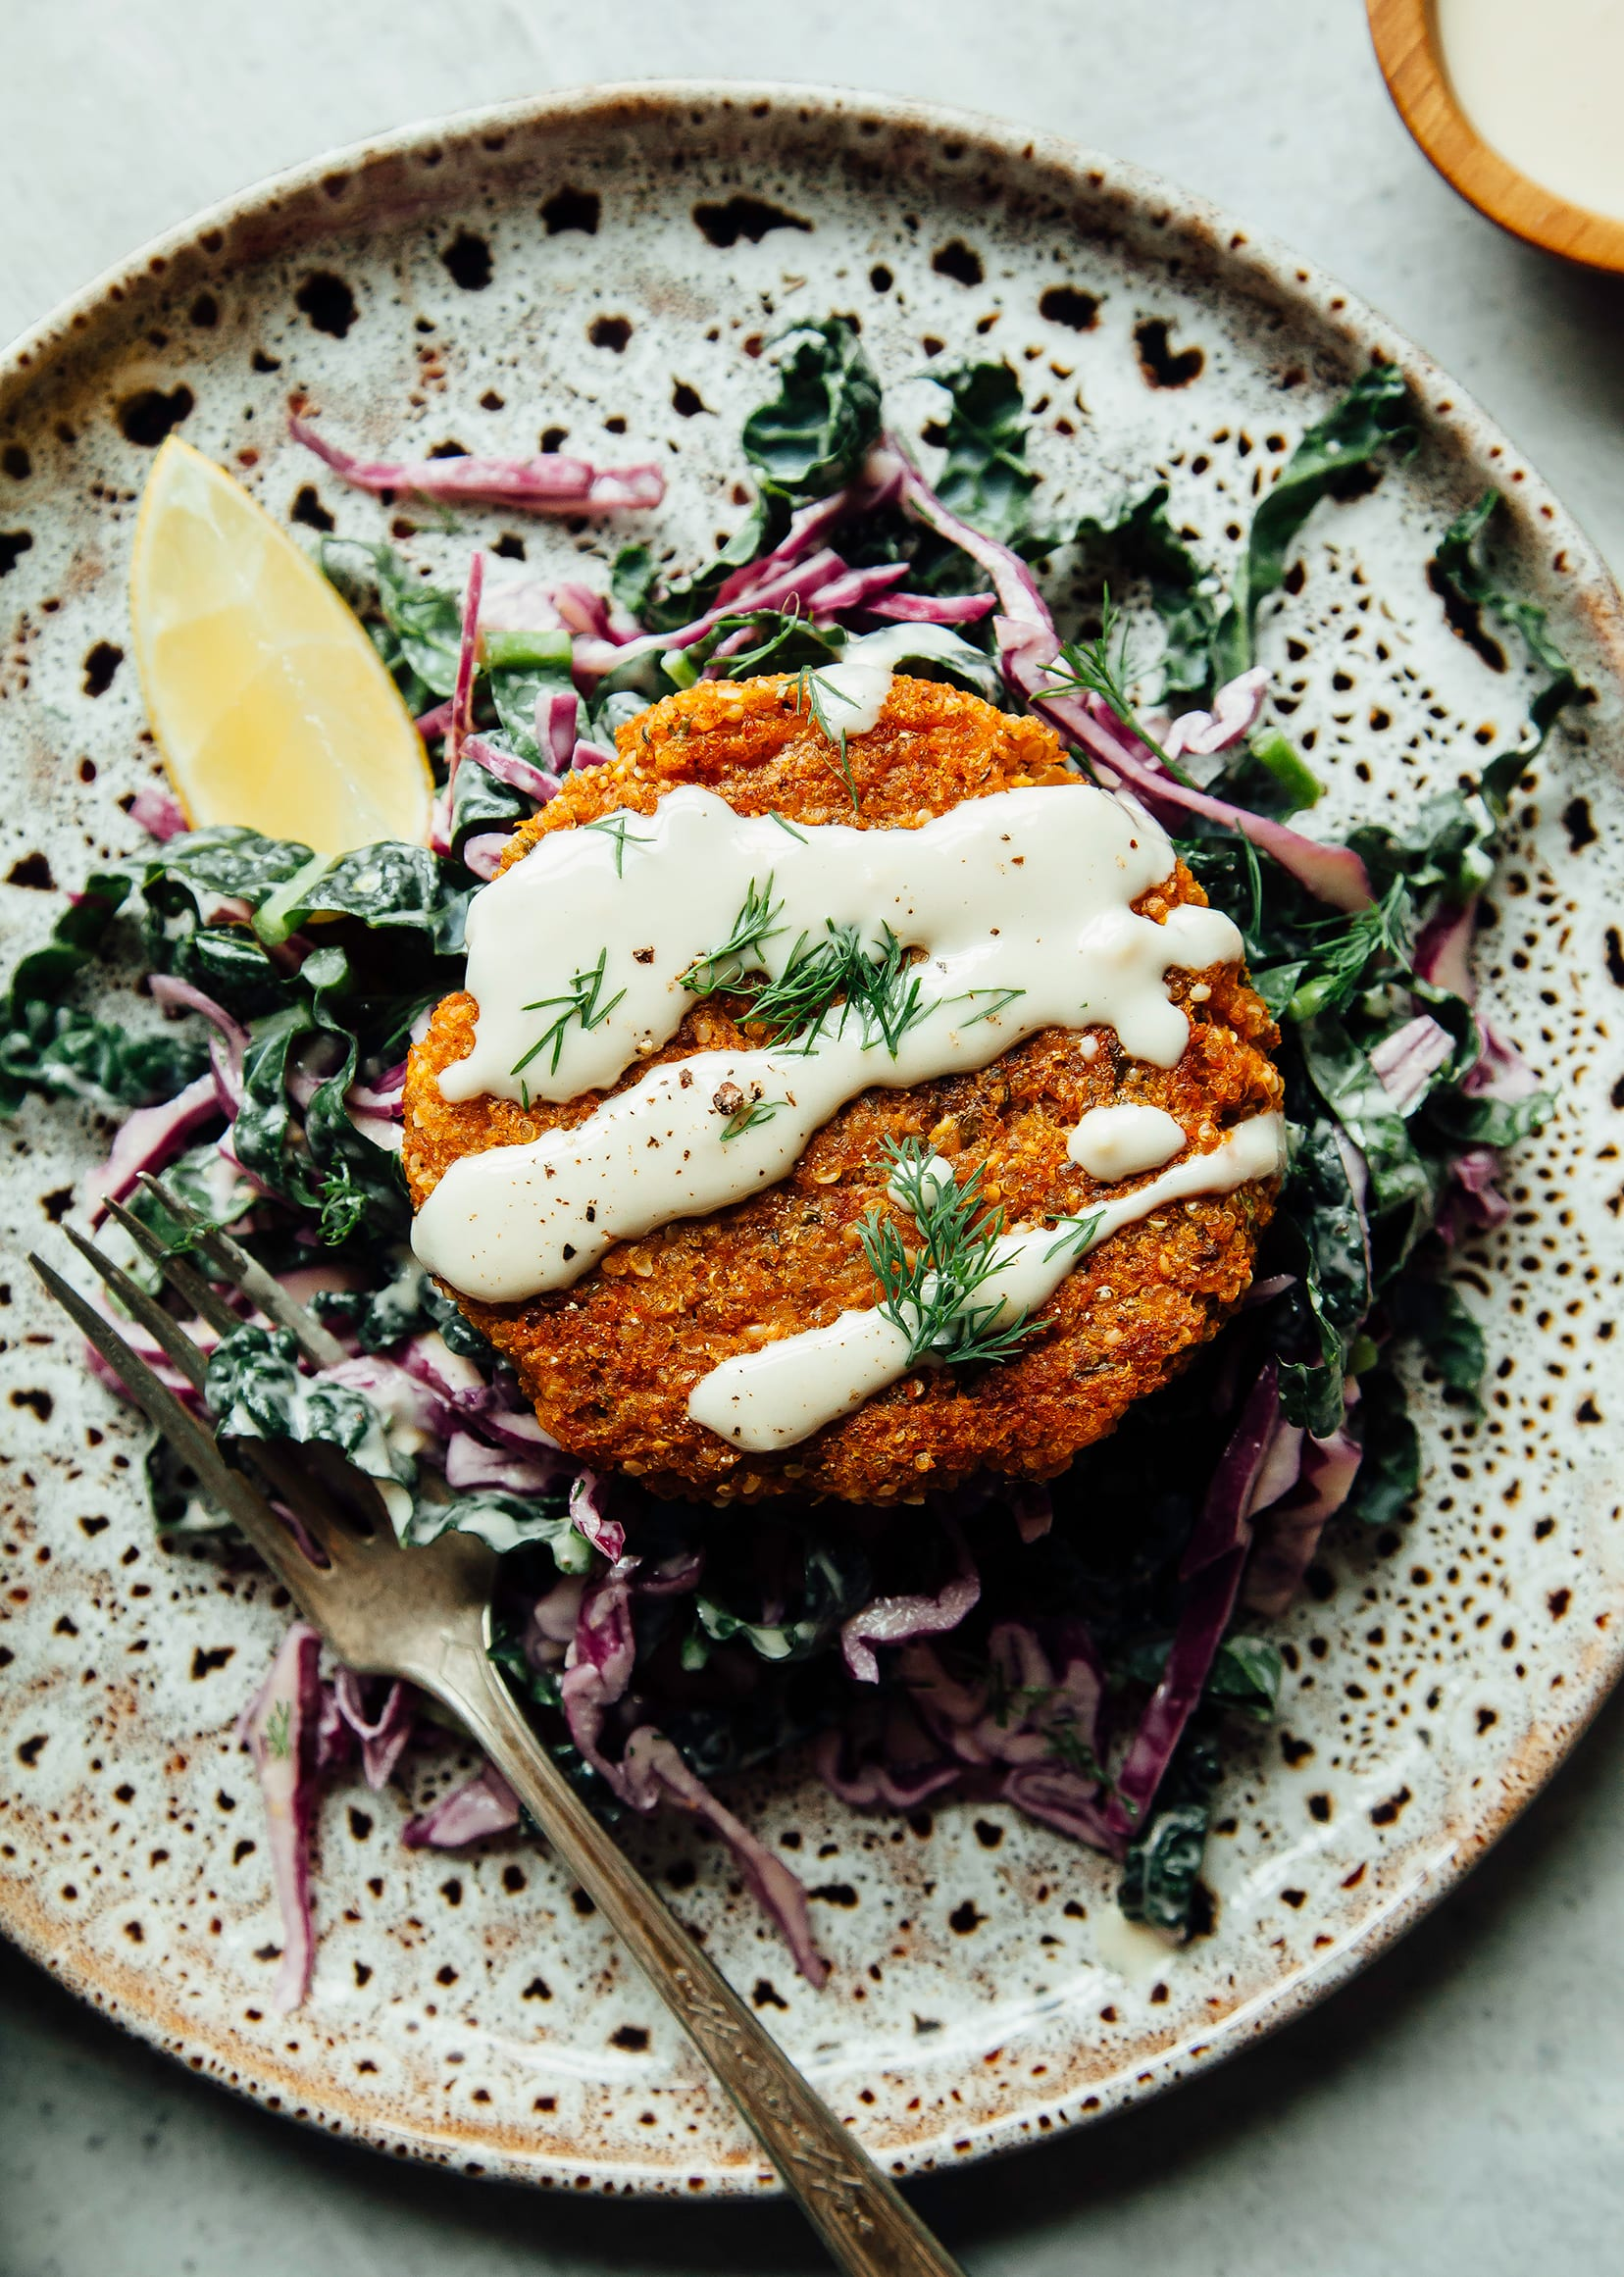 An overhead shot of a sweet potato cake pattie perched on top of a lemony slaw with a drizzle of tahini dressing. There is a lemon wedge to the side.